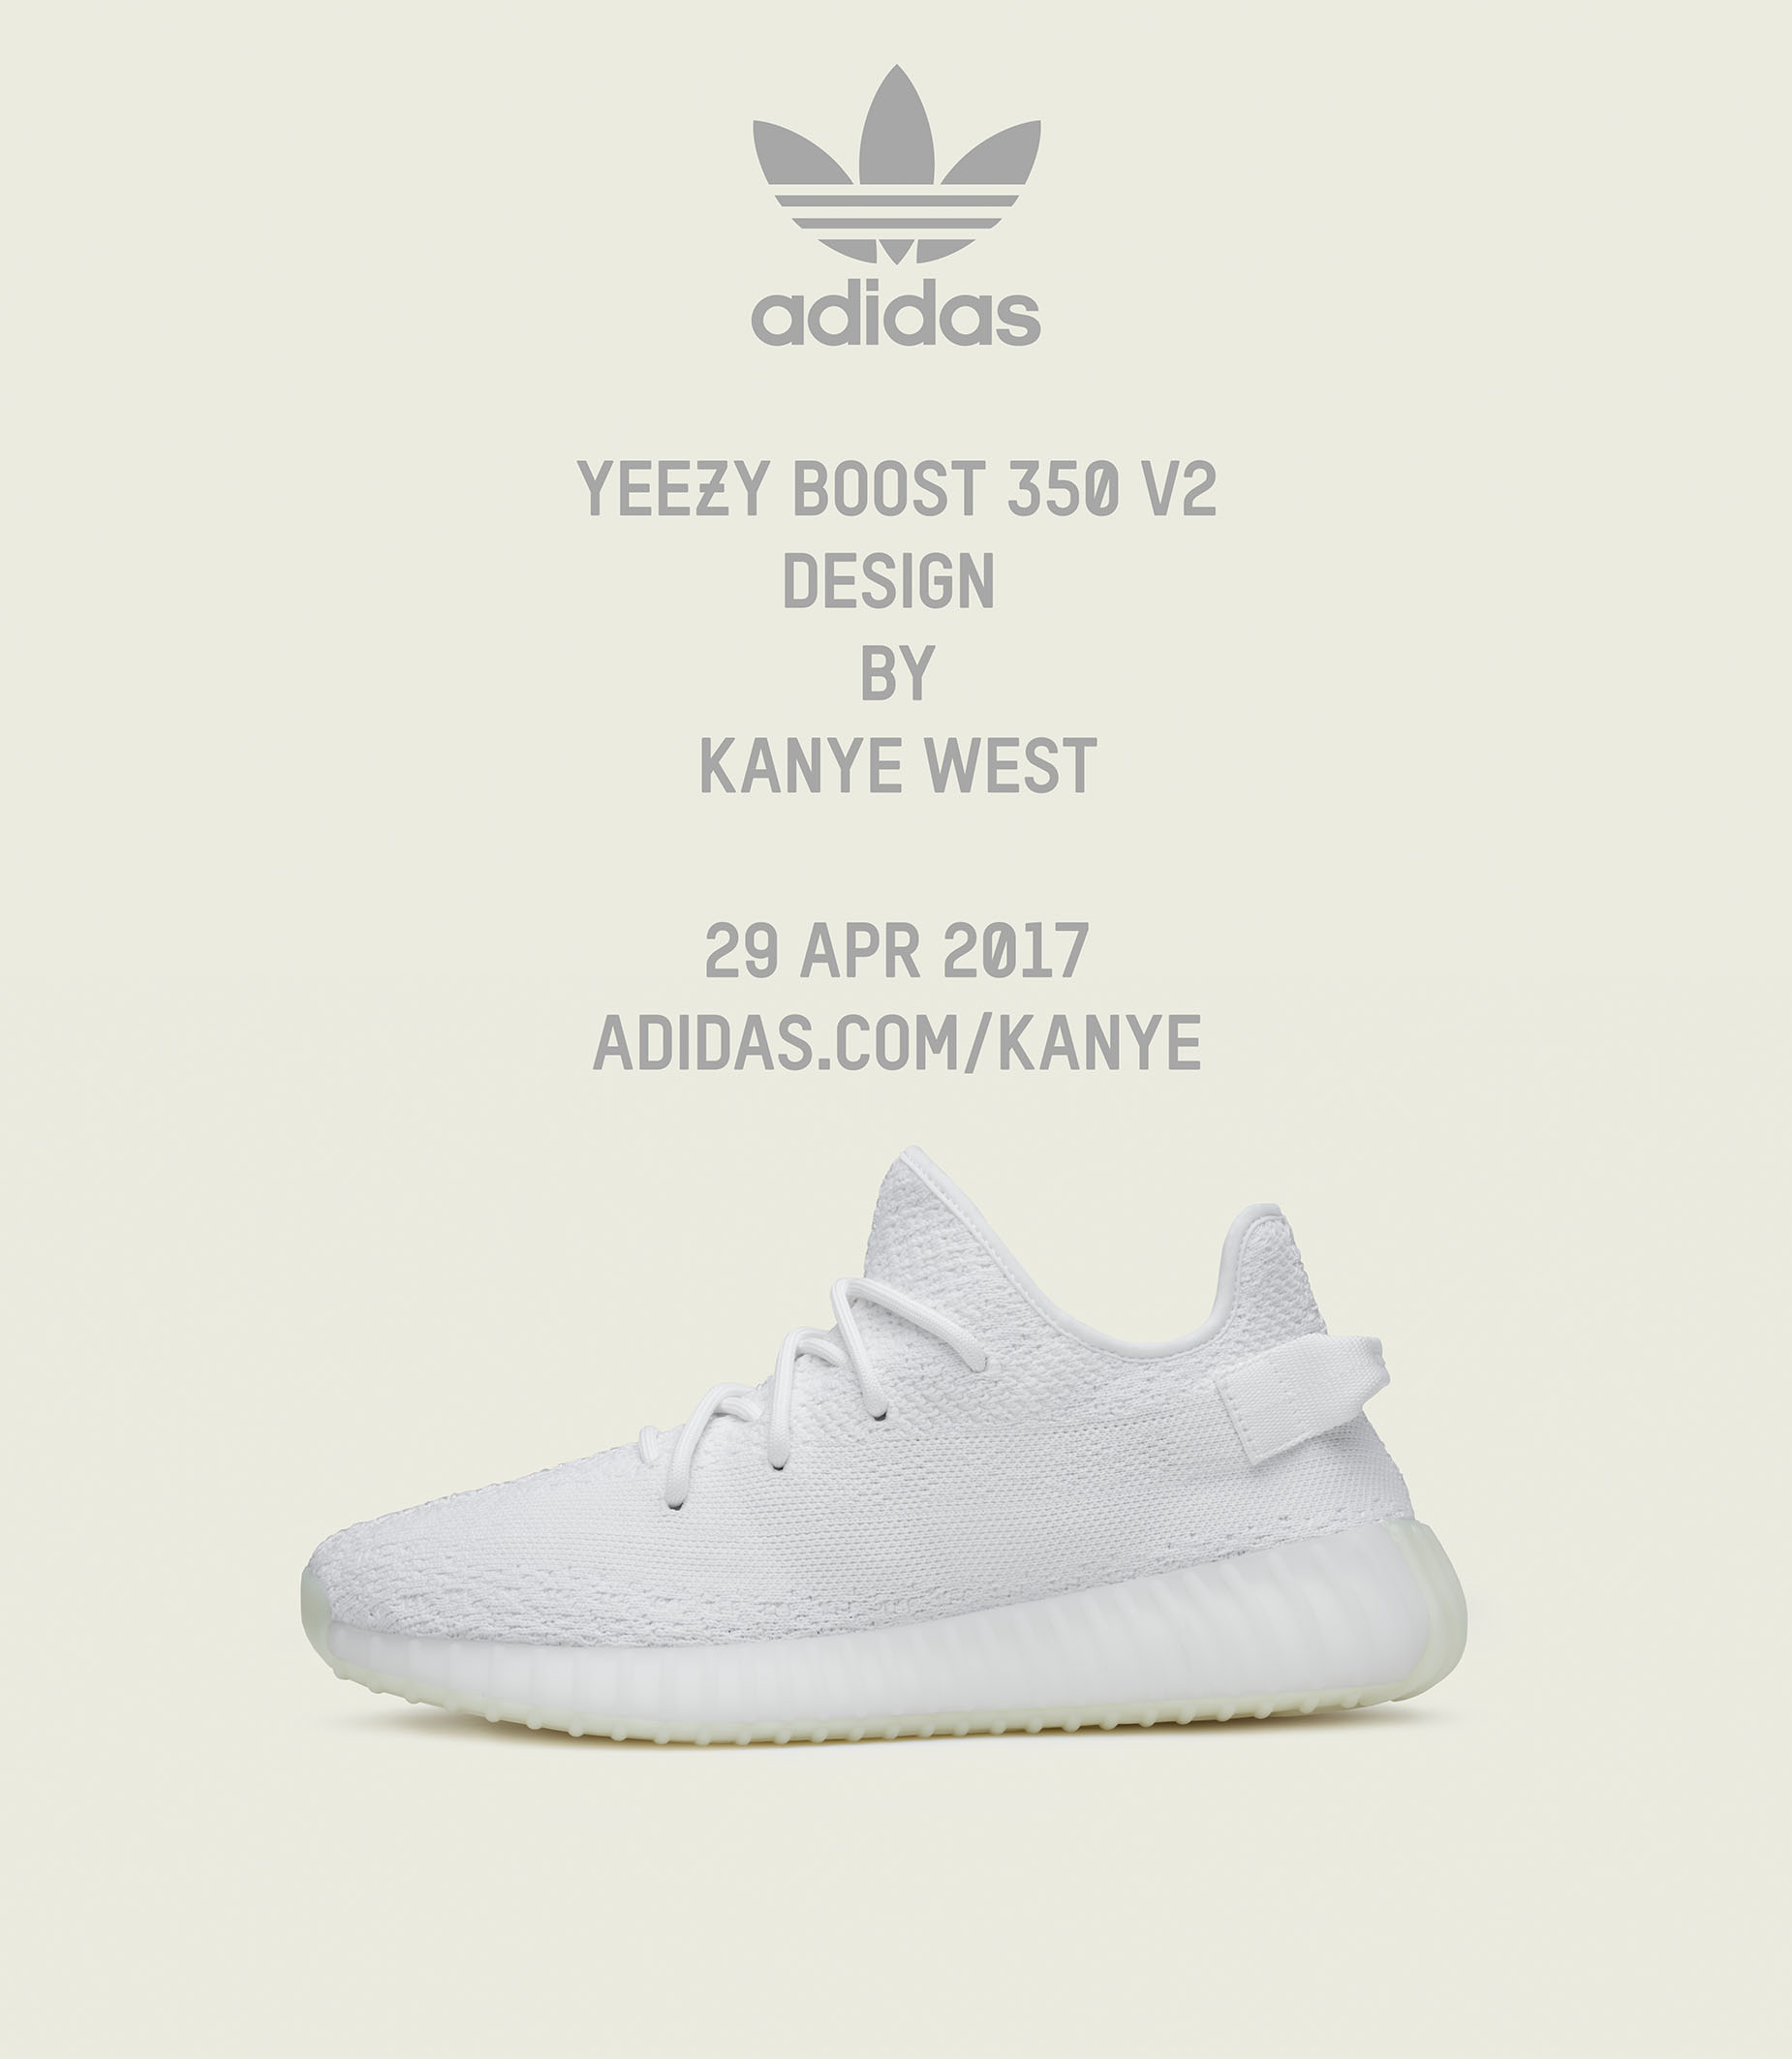 YEEZY BOOST 350 V2 TRIPLE WHITE [CP9366] $159.00 : http